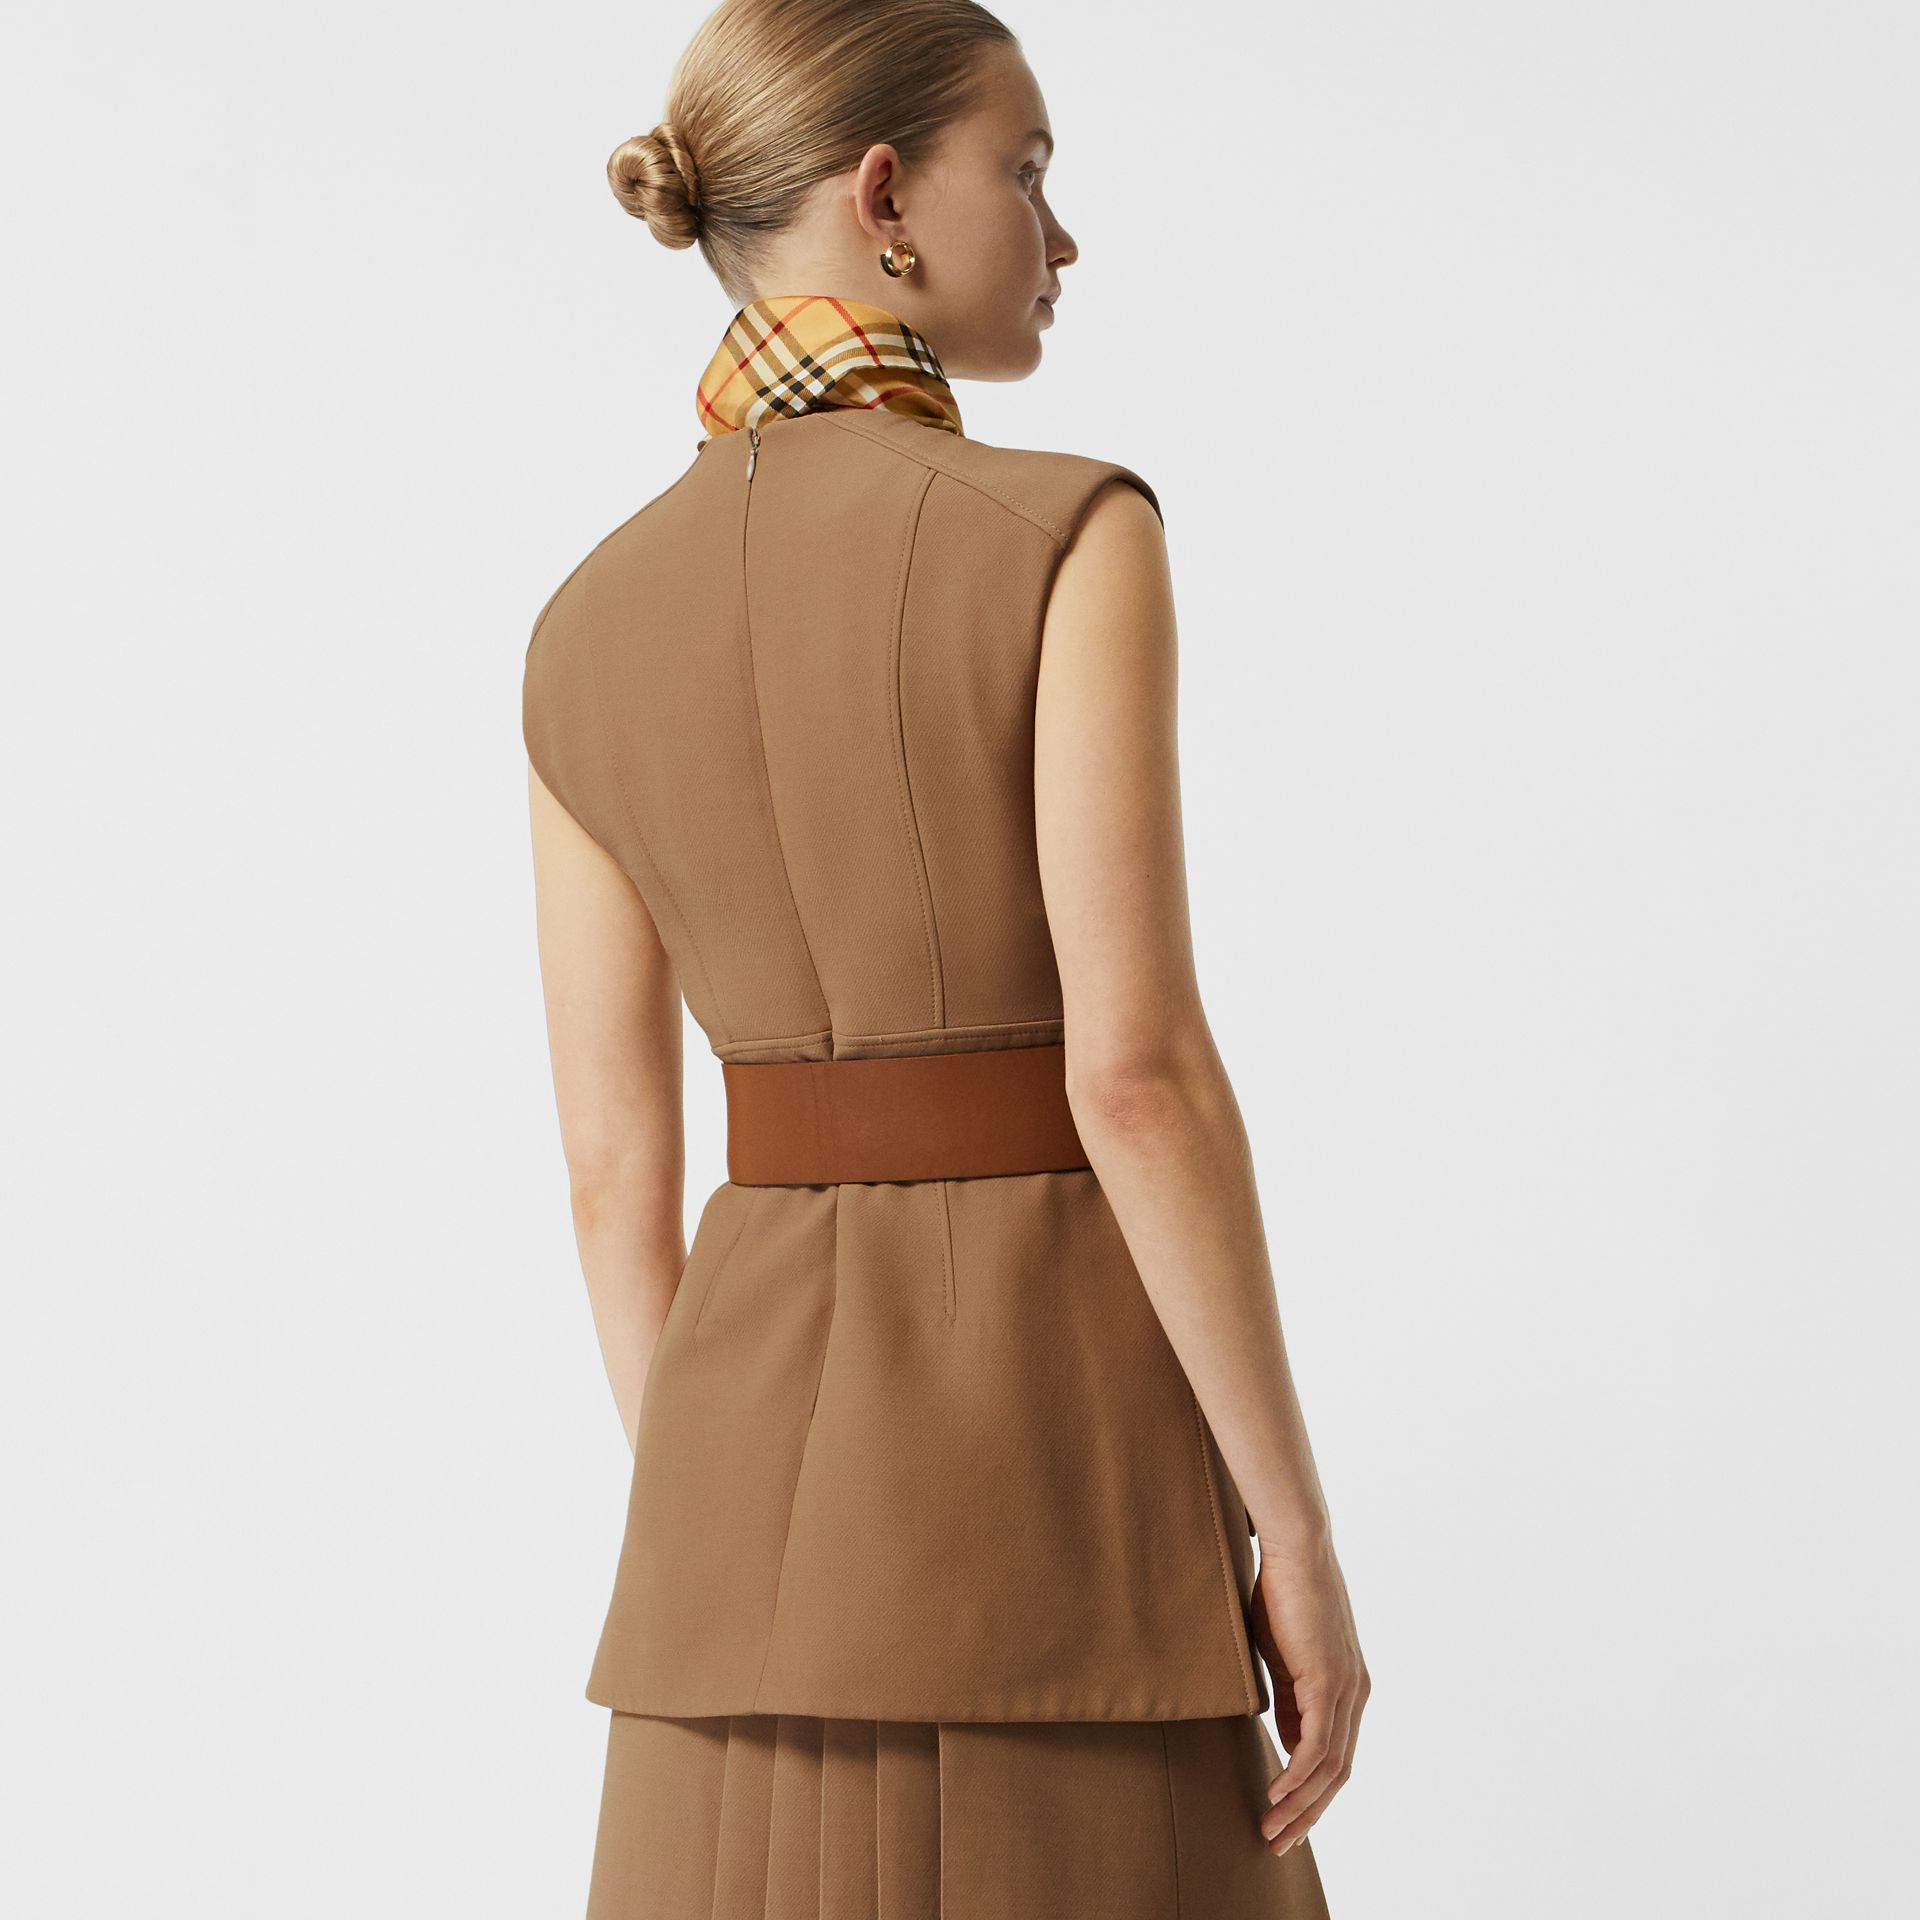 Keyhole Detail Sleeveless Wool Silk Top in Camel - Women | Burberry - gallery image 2